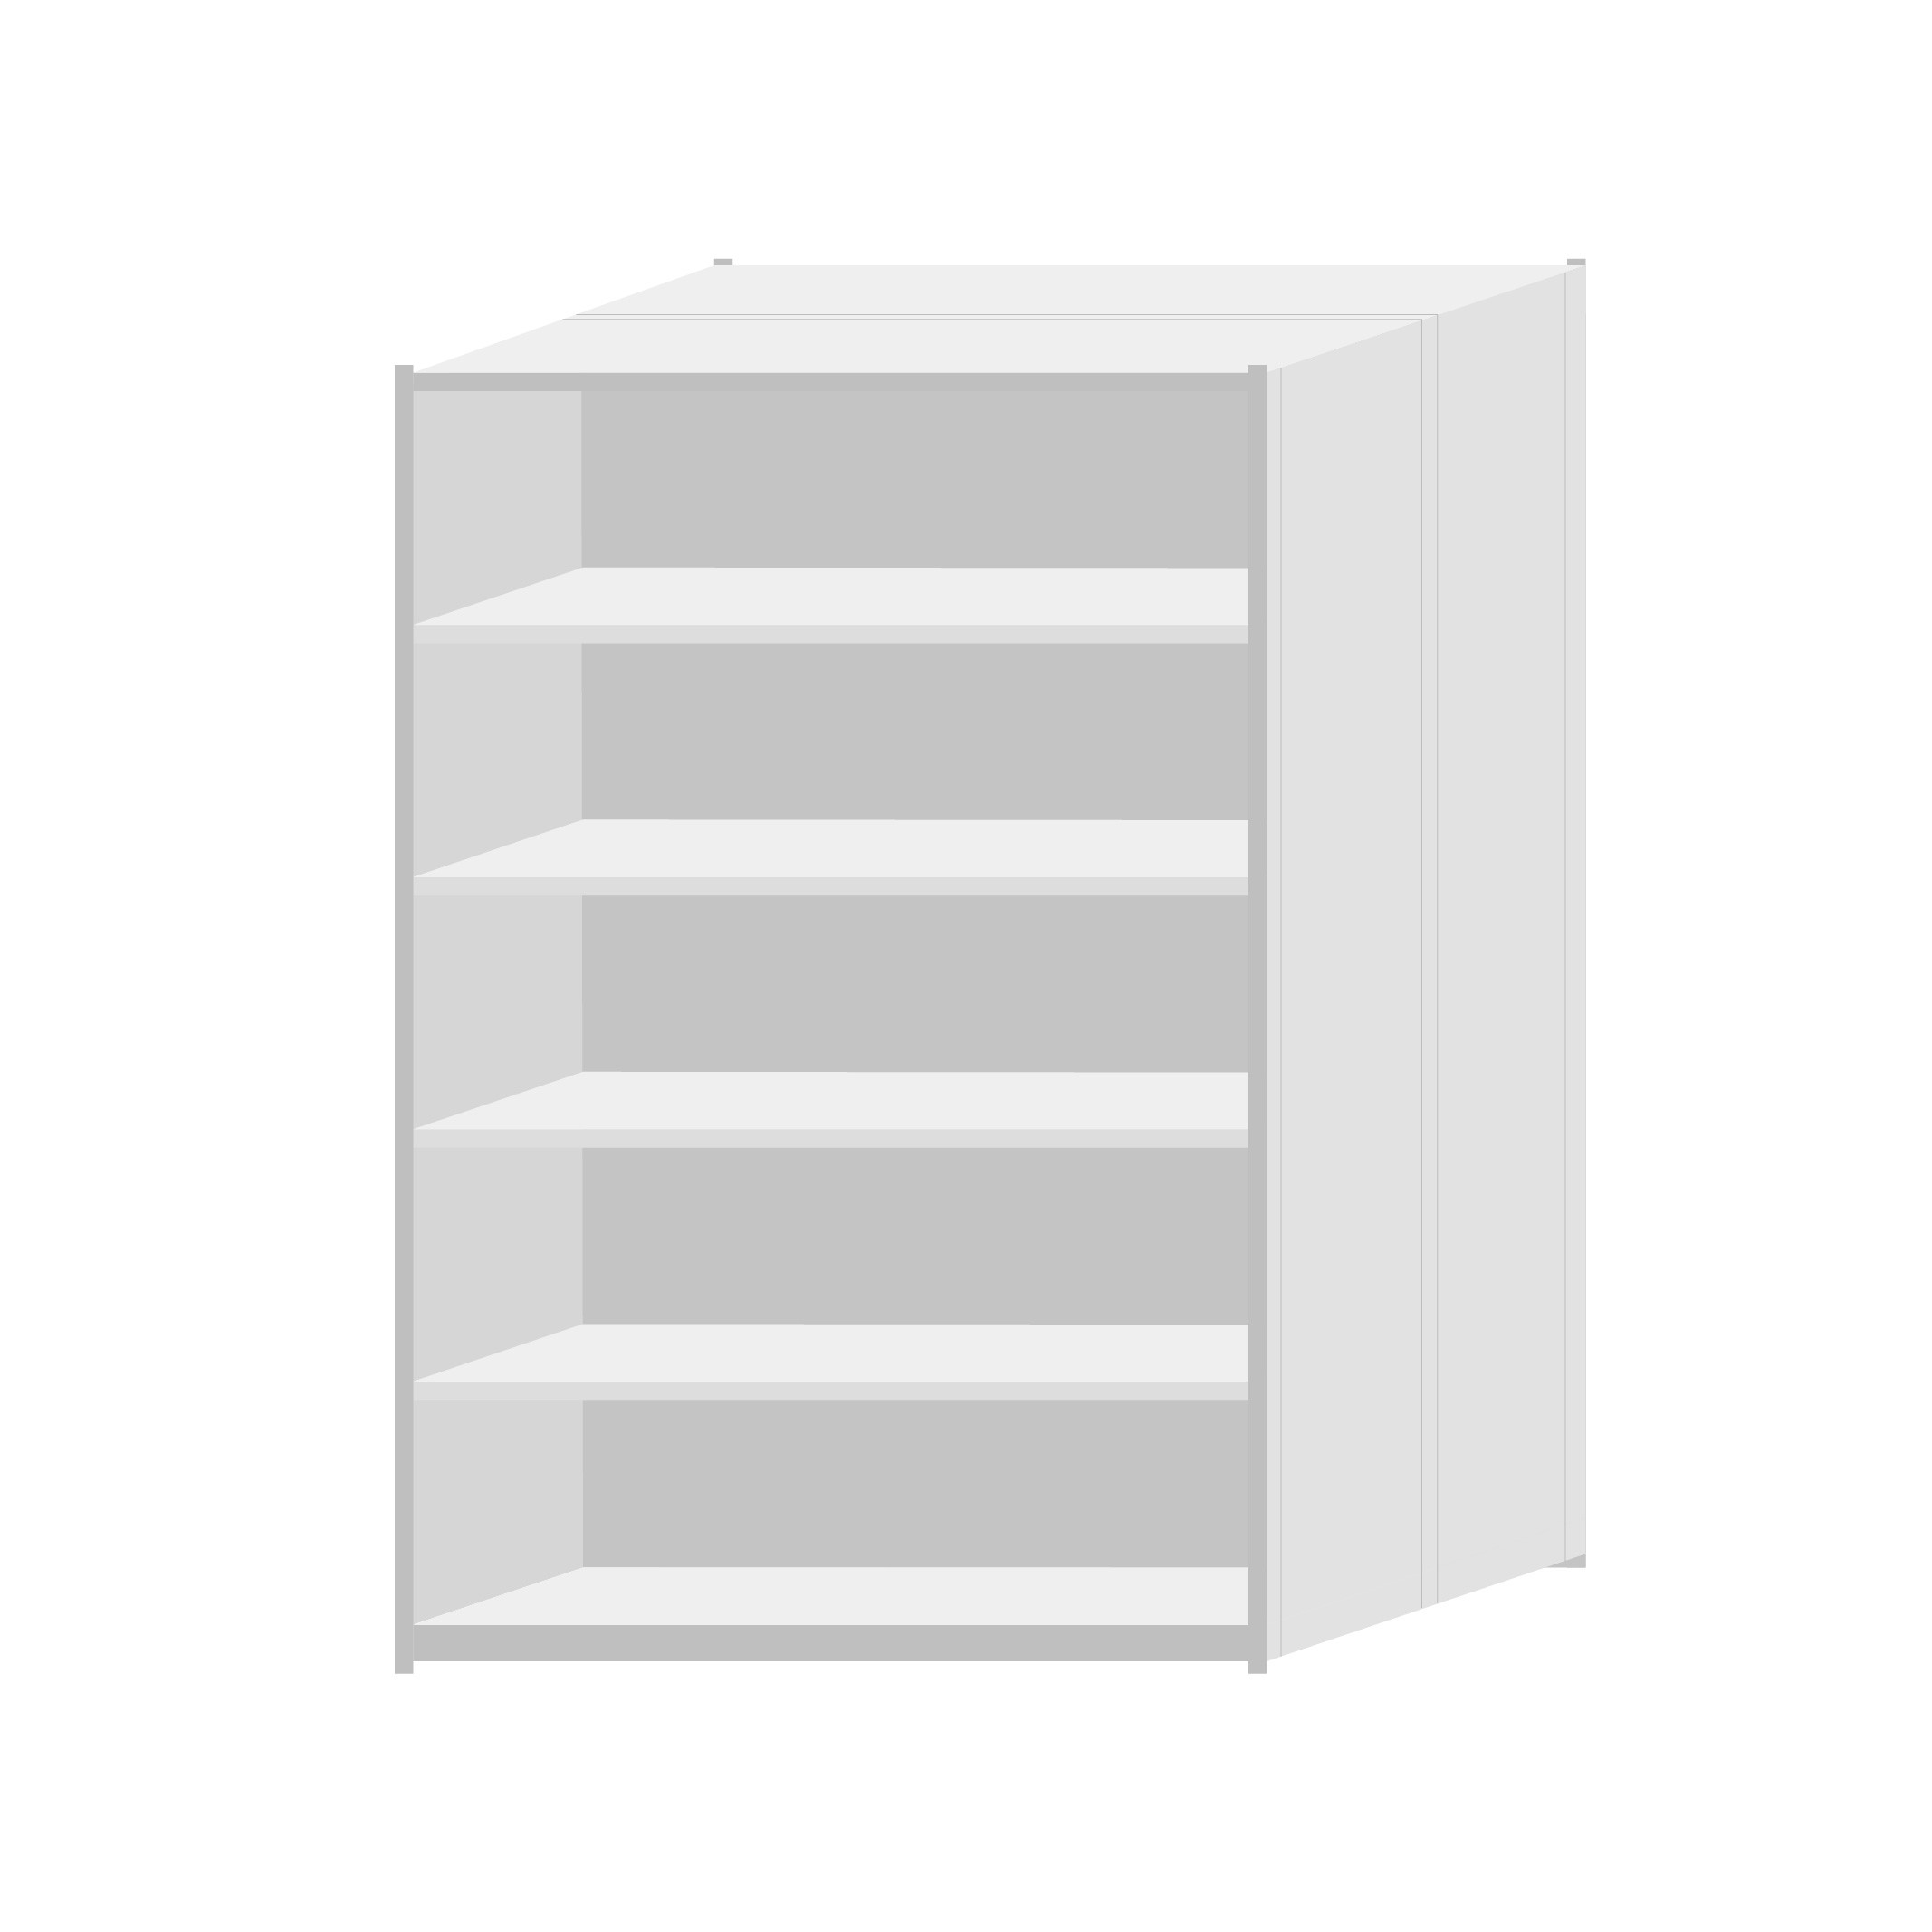 RUT Shelving 1200mm Wide - 6 Levels (Double Sided)